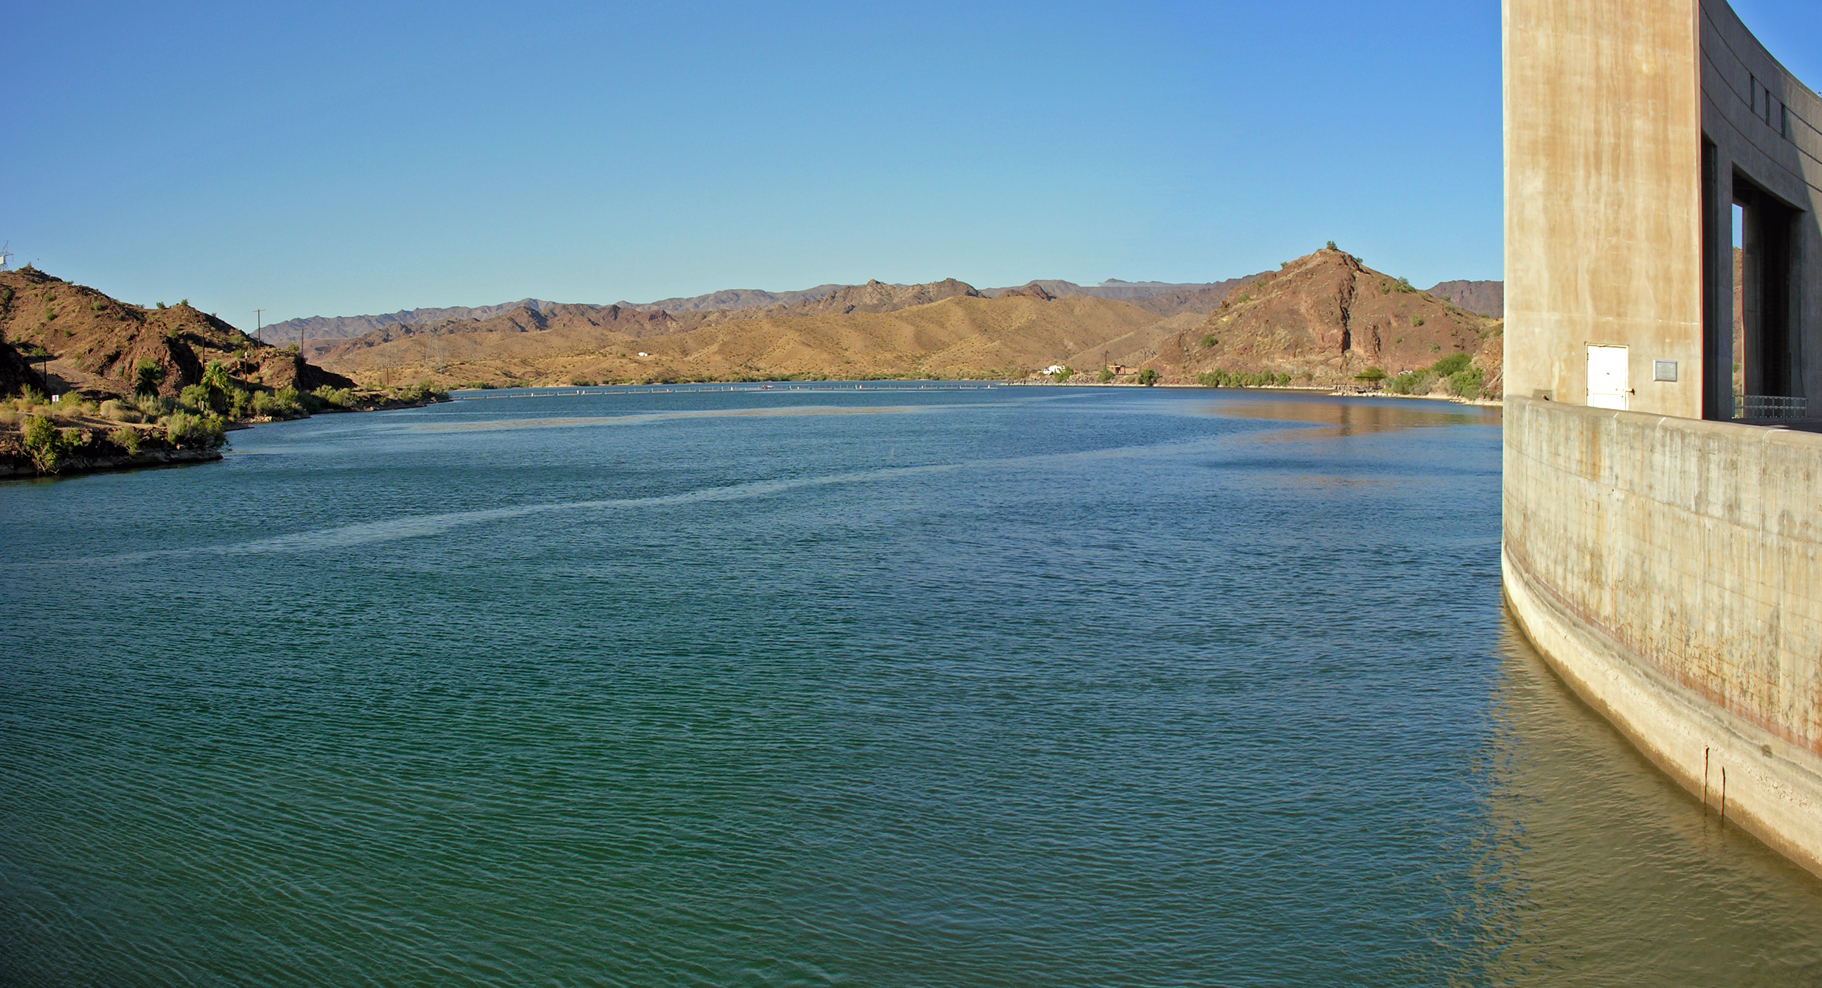 Lake Havasu Boat Tours Laughlin